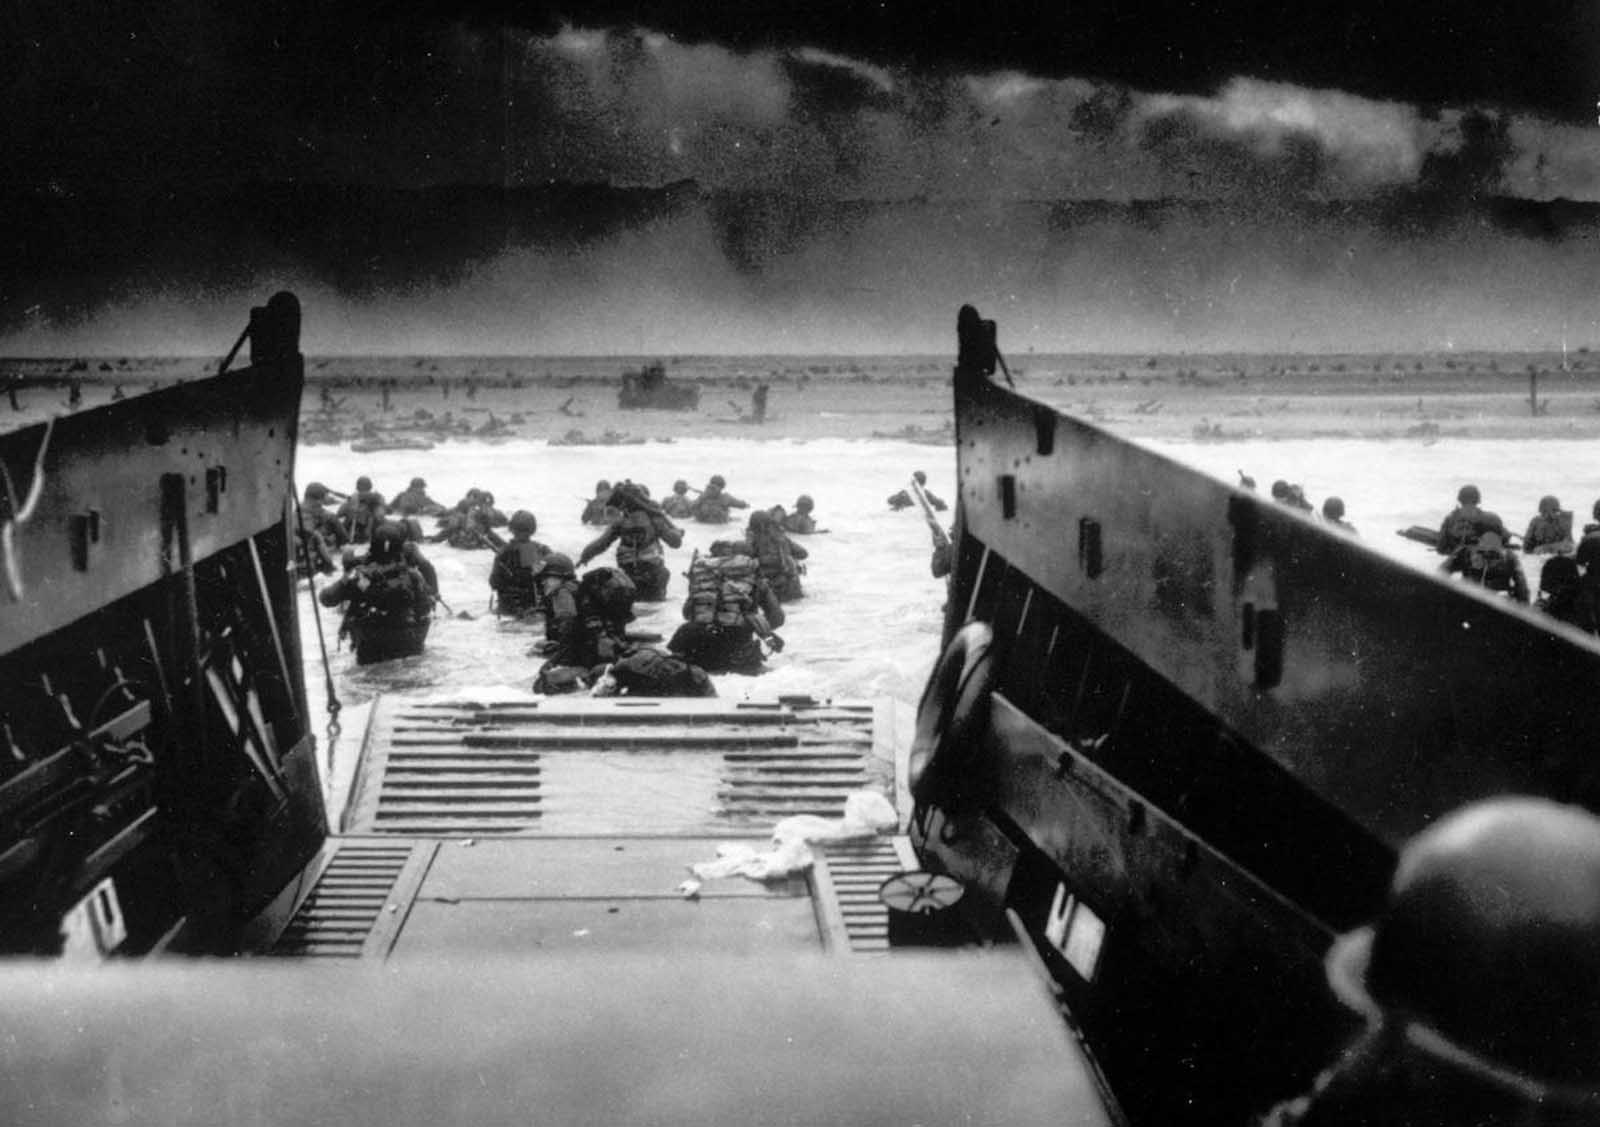 While under attack of heavy machine gun fire from the German coastal defense forces, American soldiers wade ashore off the ramp of a U.S. Coast Guard landing craft, during the Allied landing operations at Normandy, France on D-Day, June 6, 1944.